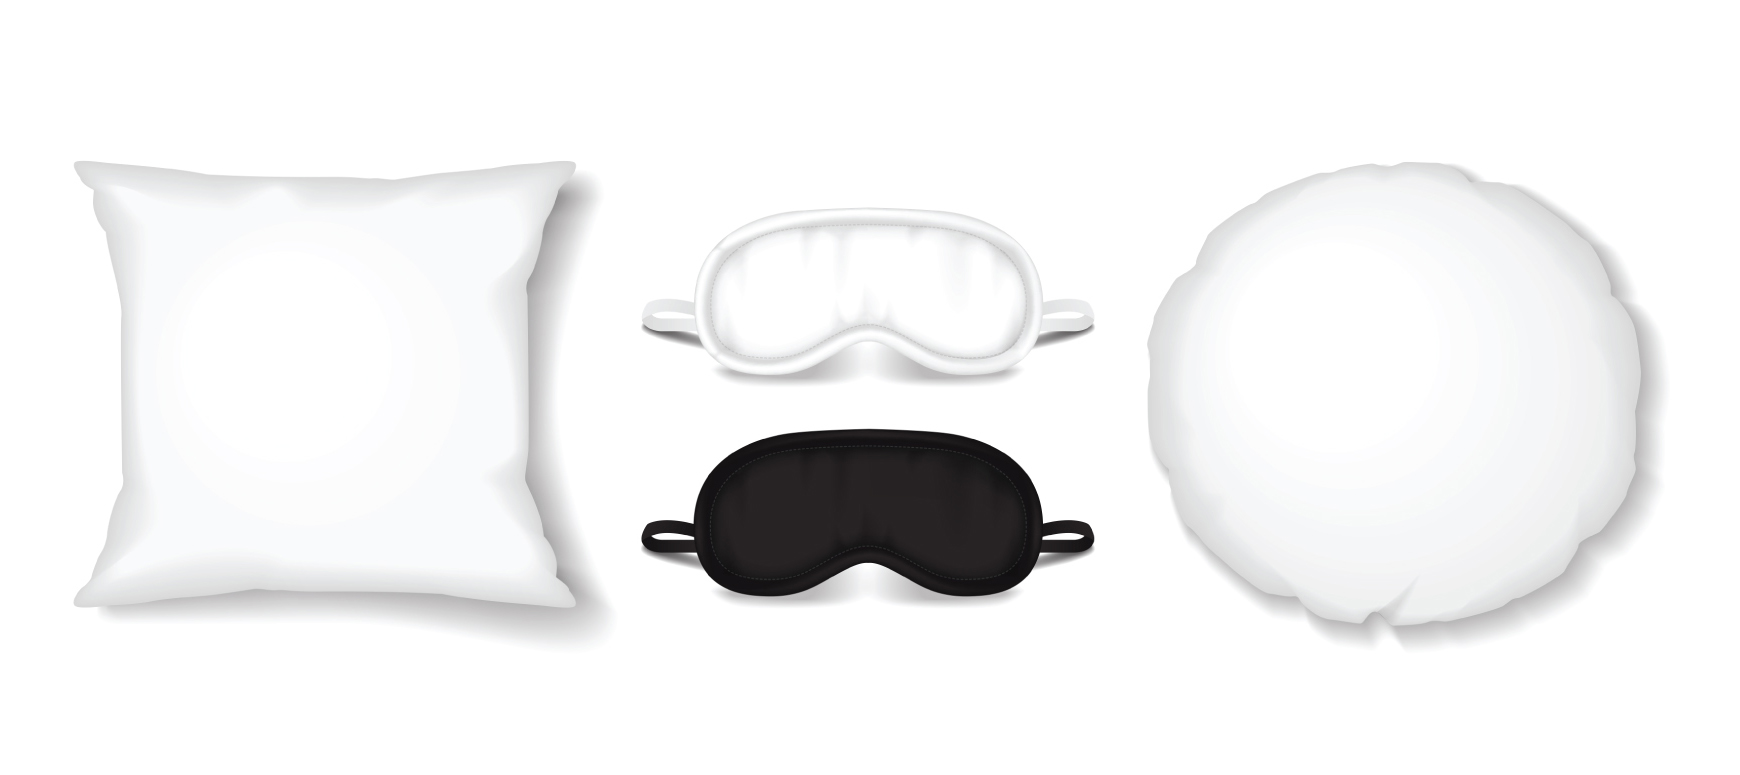 Pillows and sleep masks